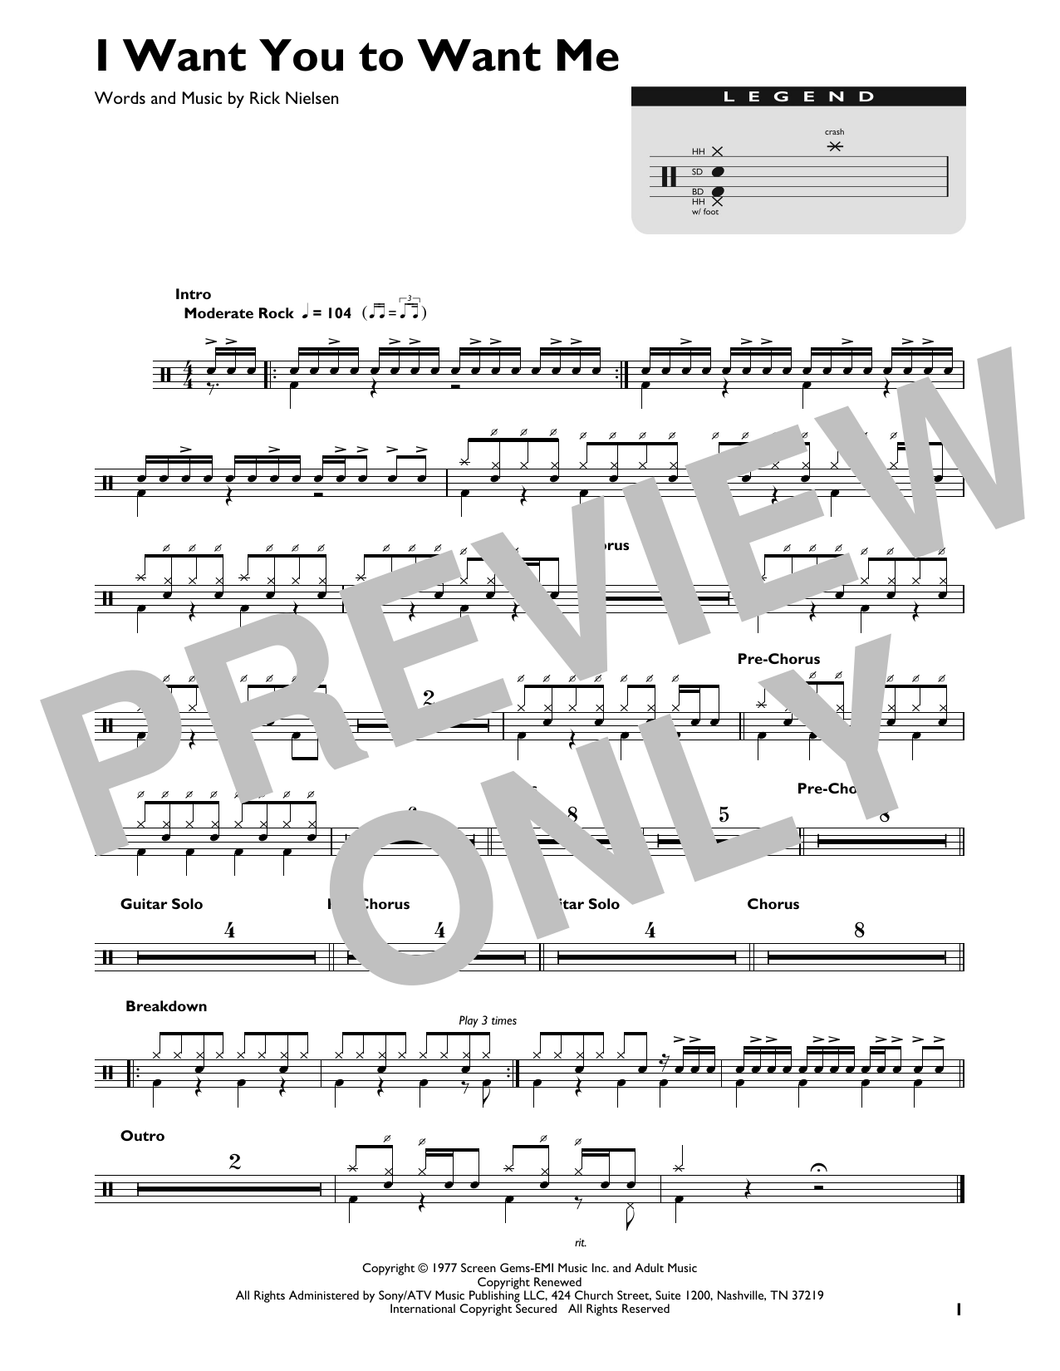 I Want You To Want Me - Cheap Trick - Full Drum Transcription / Drum Sheet Music - SheetMusicDirect DT